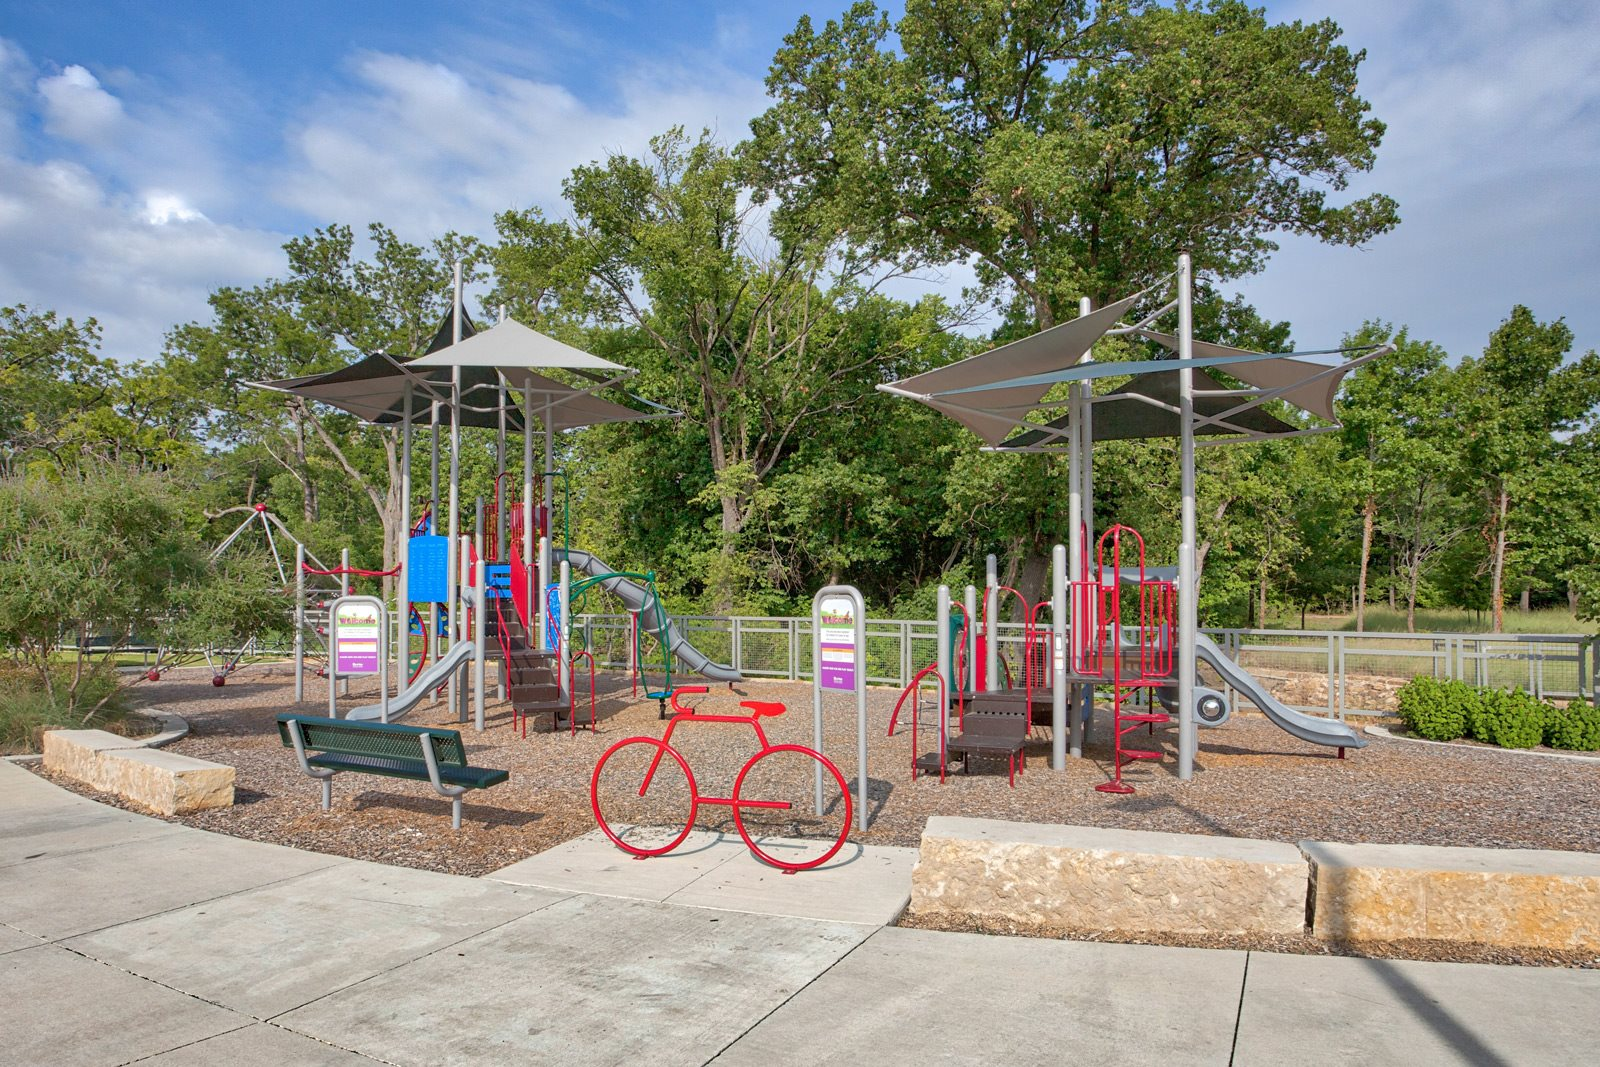 Amazing Outdoor Playground at CityLine Park Windsor, Texas, 75082